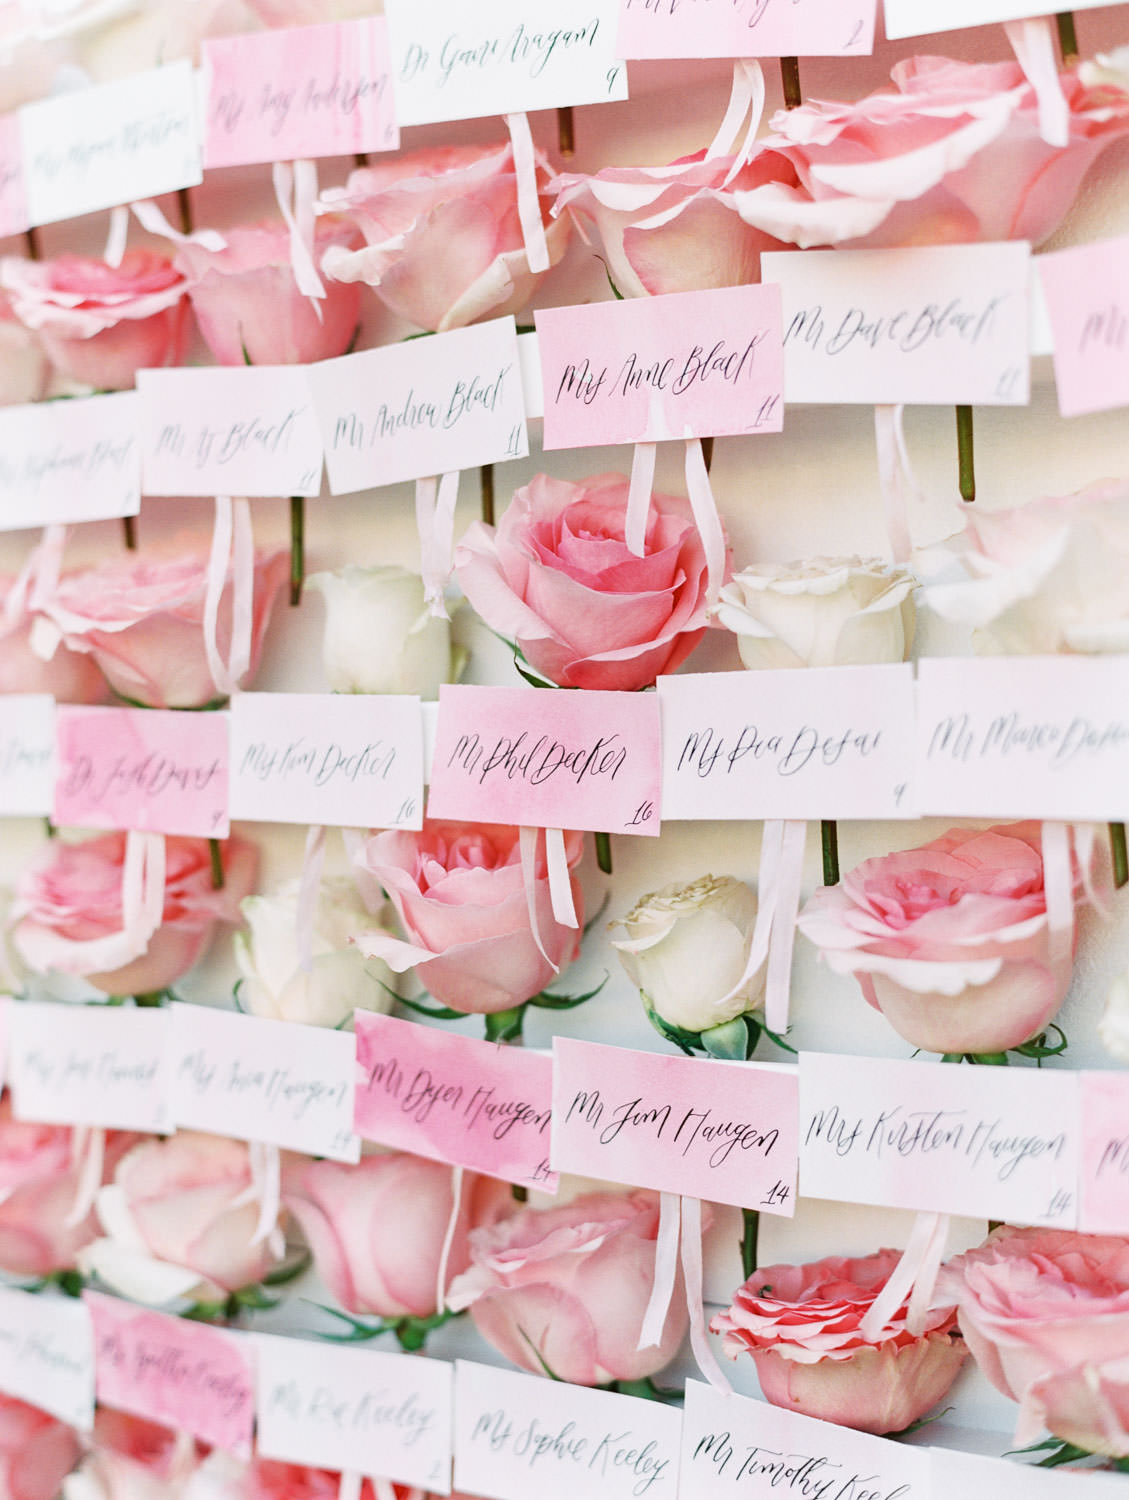 White escort display with each guest's escort card comes with a pink rose to pick off of the wall. Miramonte Resort wedding. Film photography by Cavin Elizabeth.